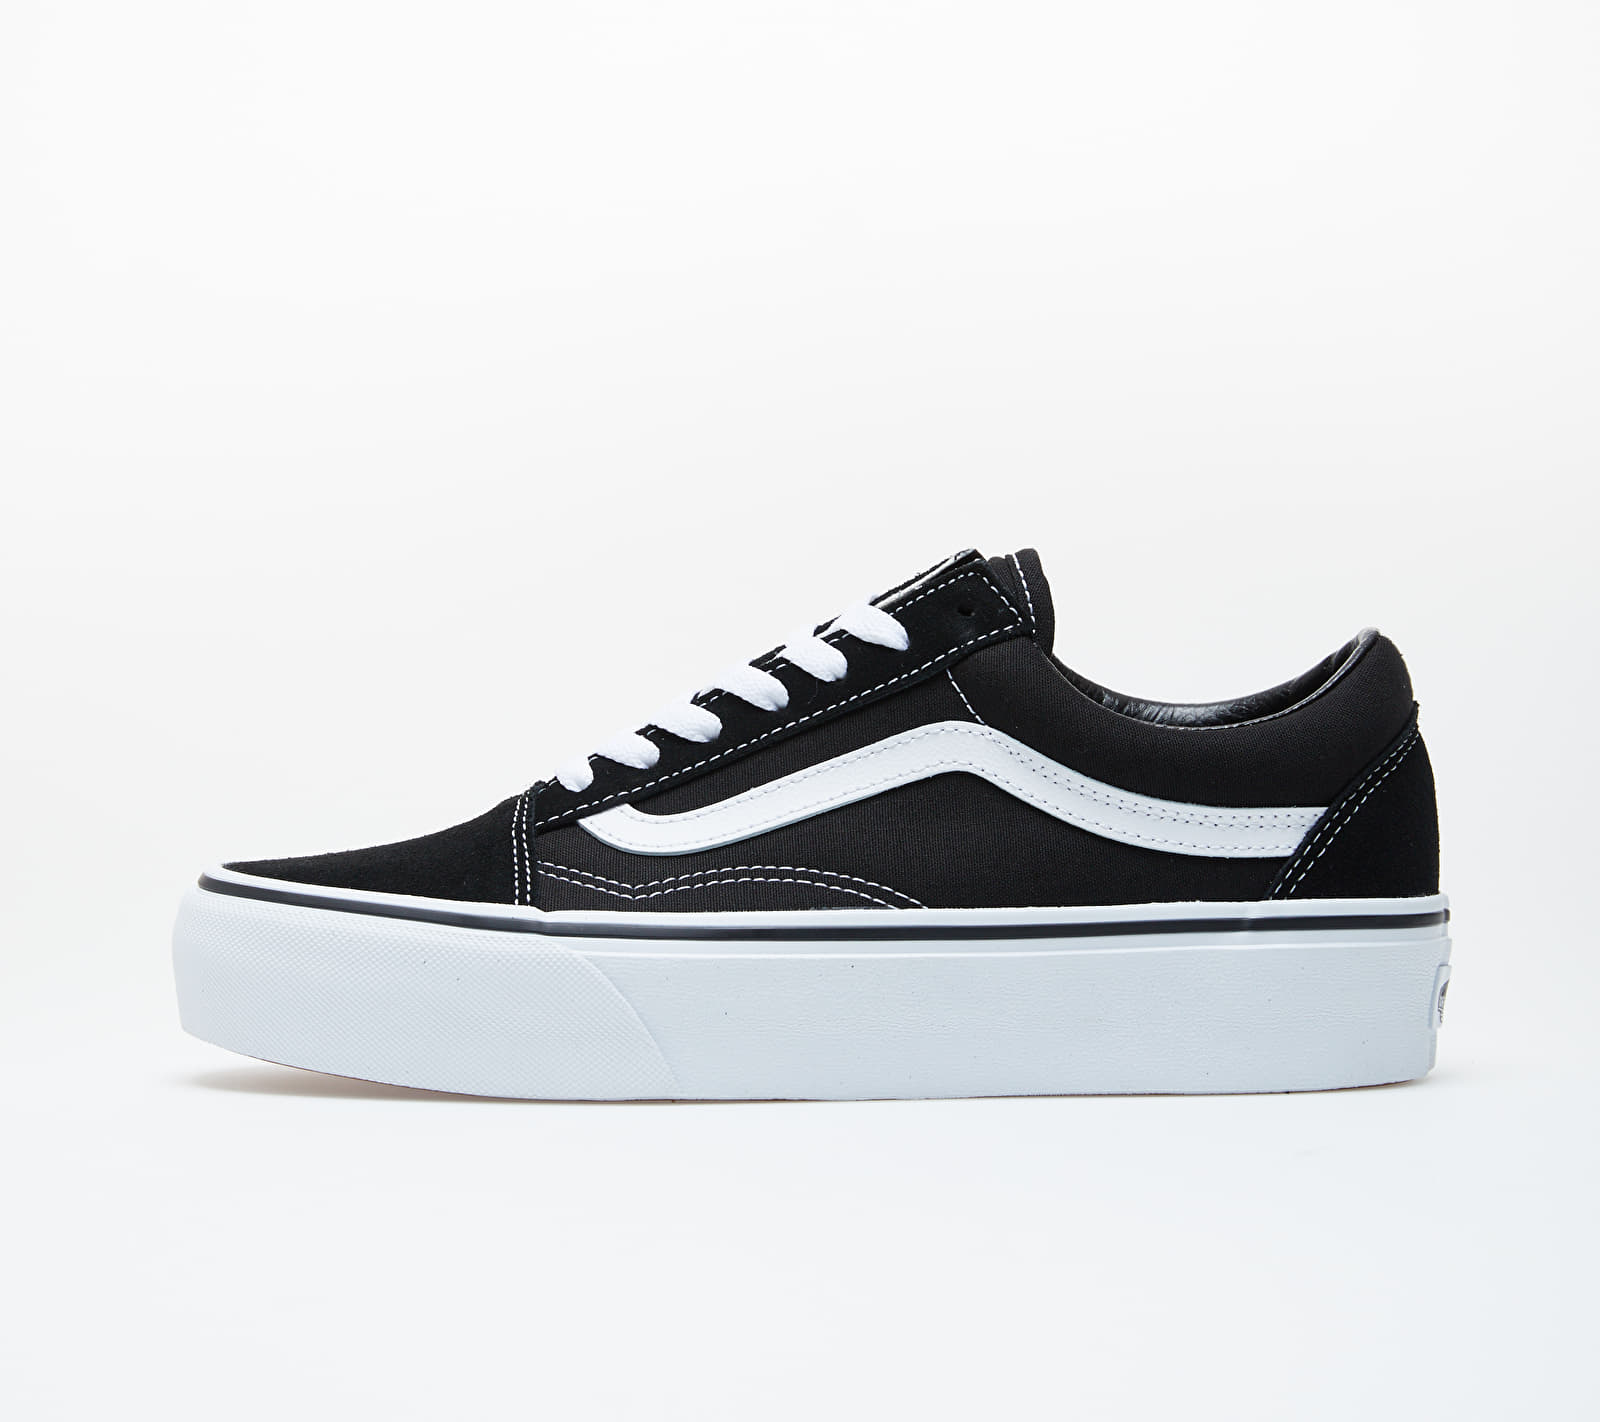 Vans Old Skool Platform Black/ White EUR 38.5